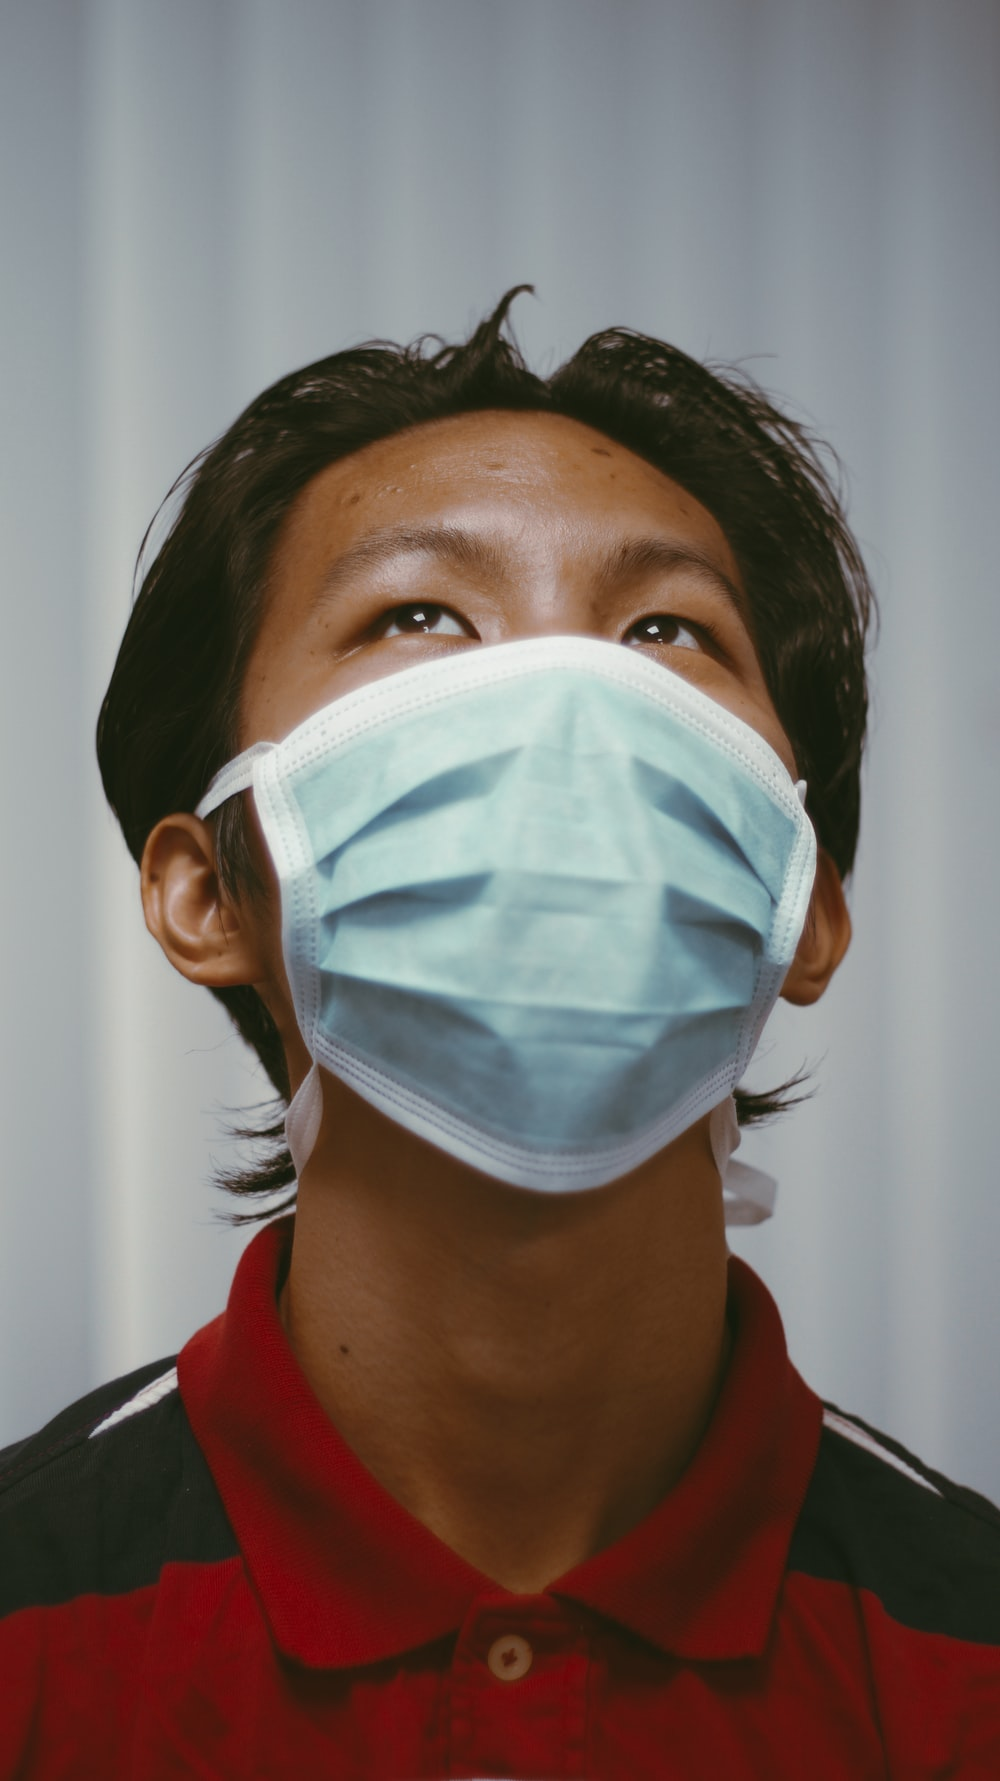 woman in red shirt wearing white face mask